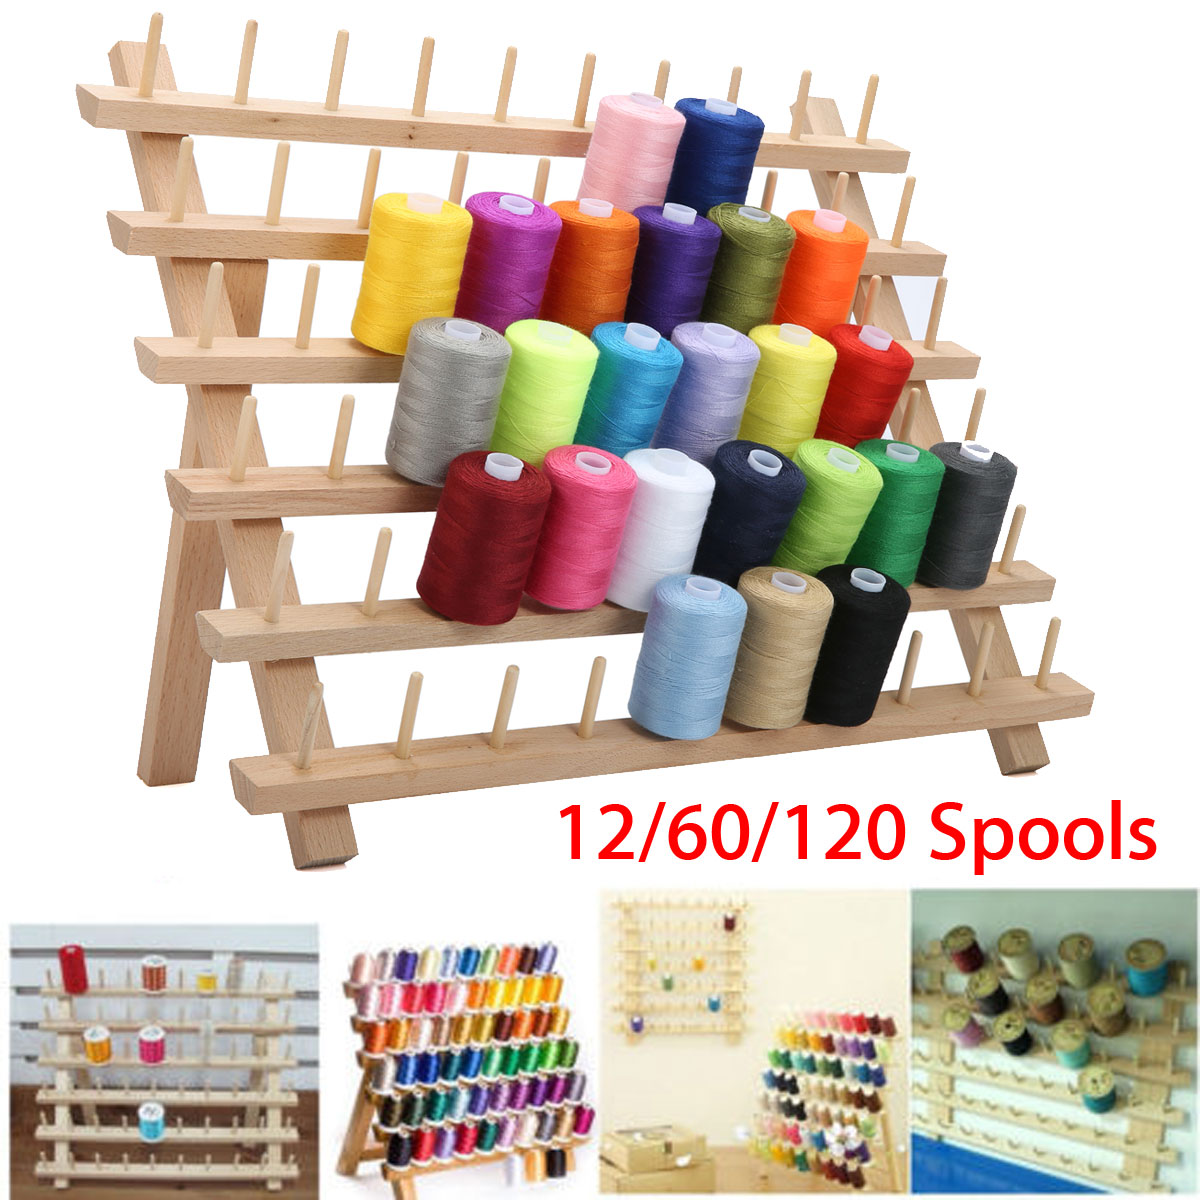 KiWarm 60 Spools BeechWood Folded Mini Sewing Embroidery Thread Stand Holder Rack Storage Sewing Accessories